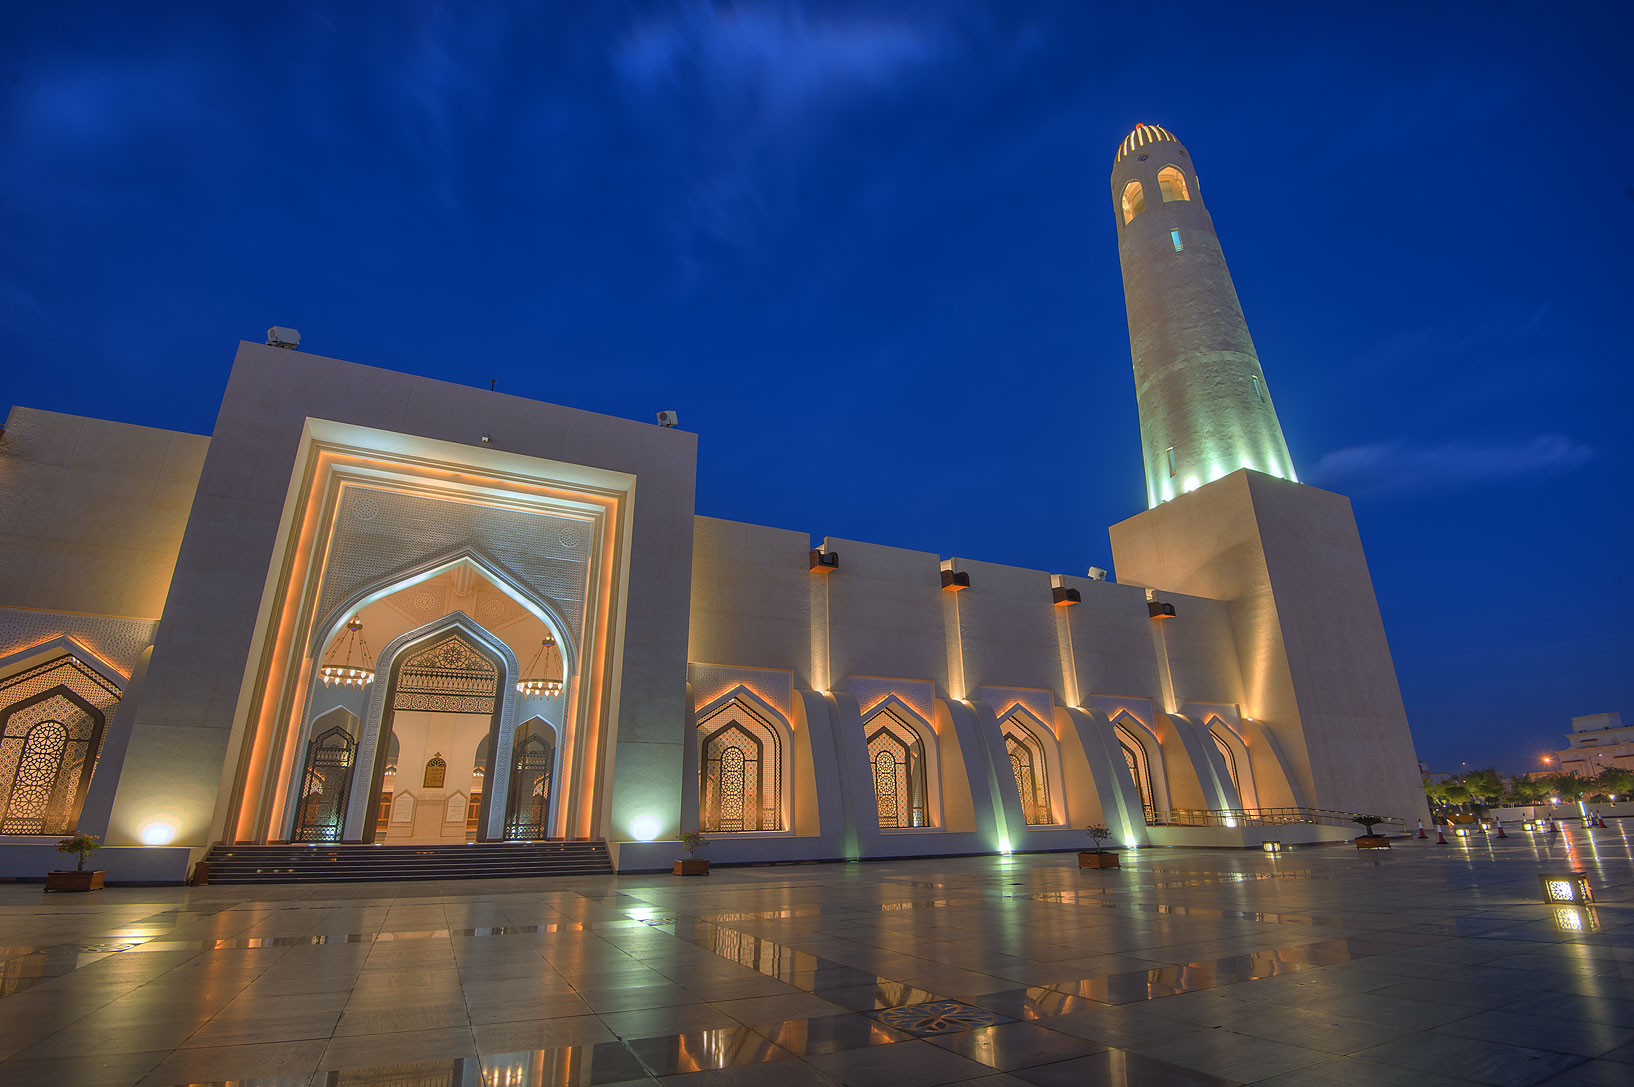 Gate of State Mosque (Sheikh Muhammad Ibn Abdul...Mosque) at morning dusk. Doha, Qatar